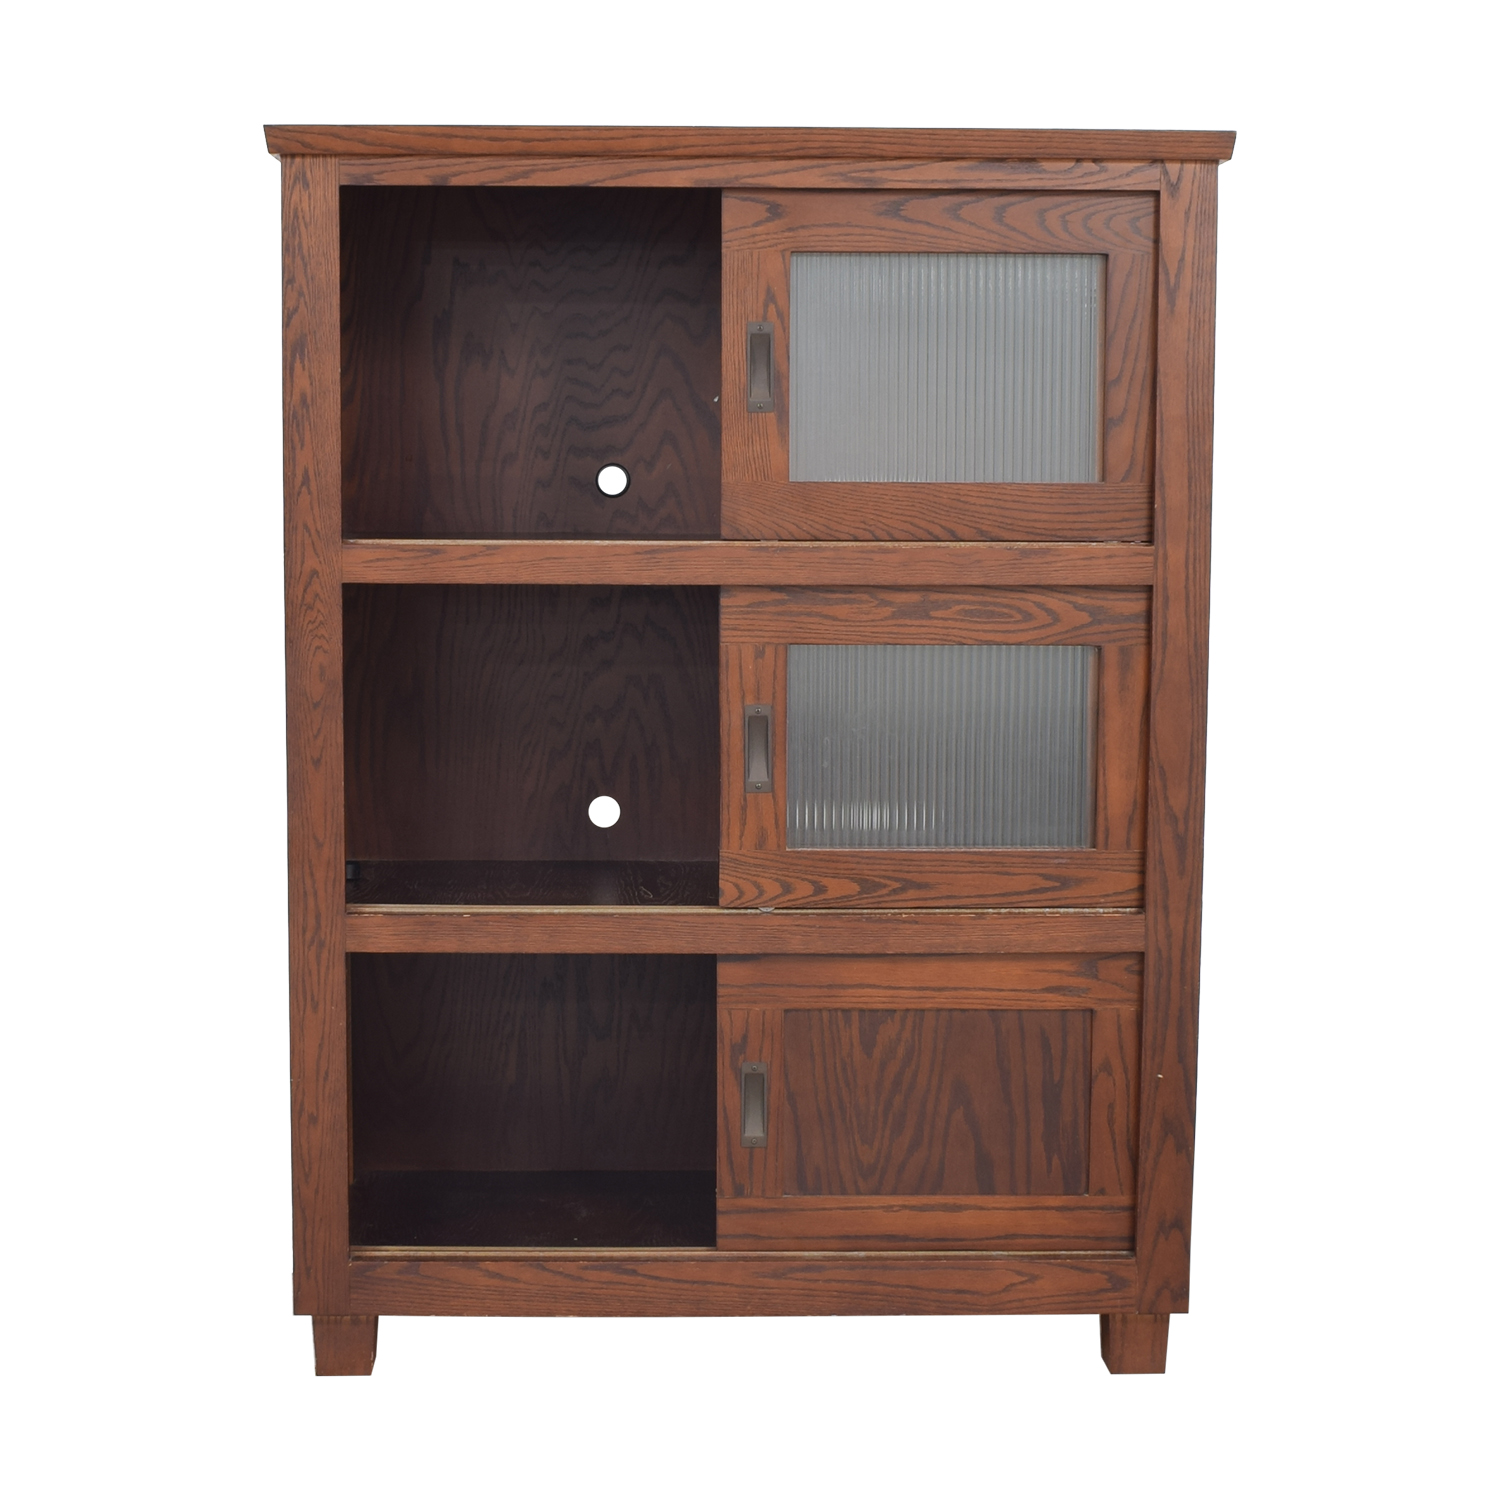 Custom Sliding Door Media Unit / Storage